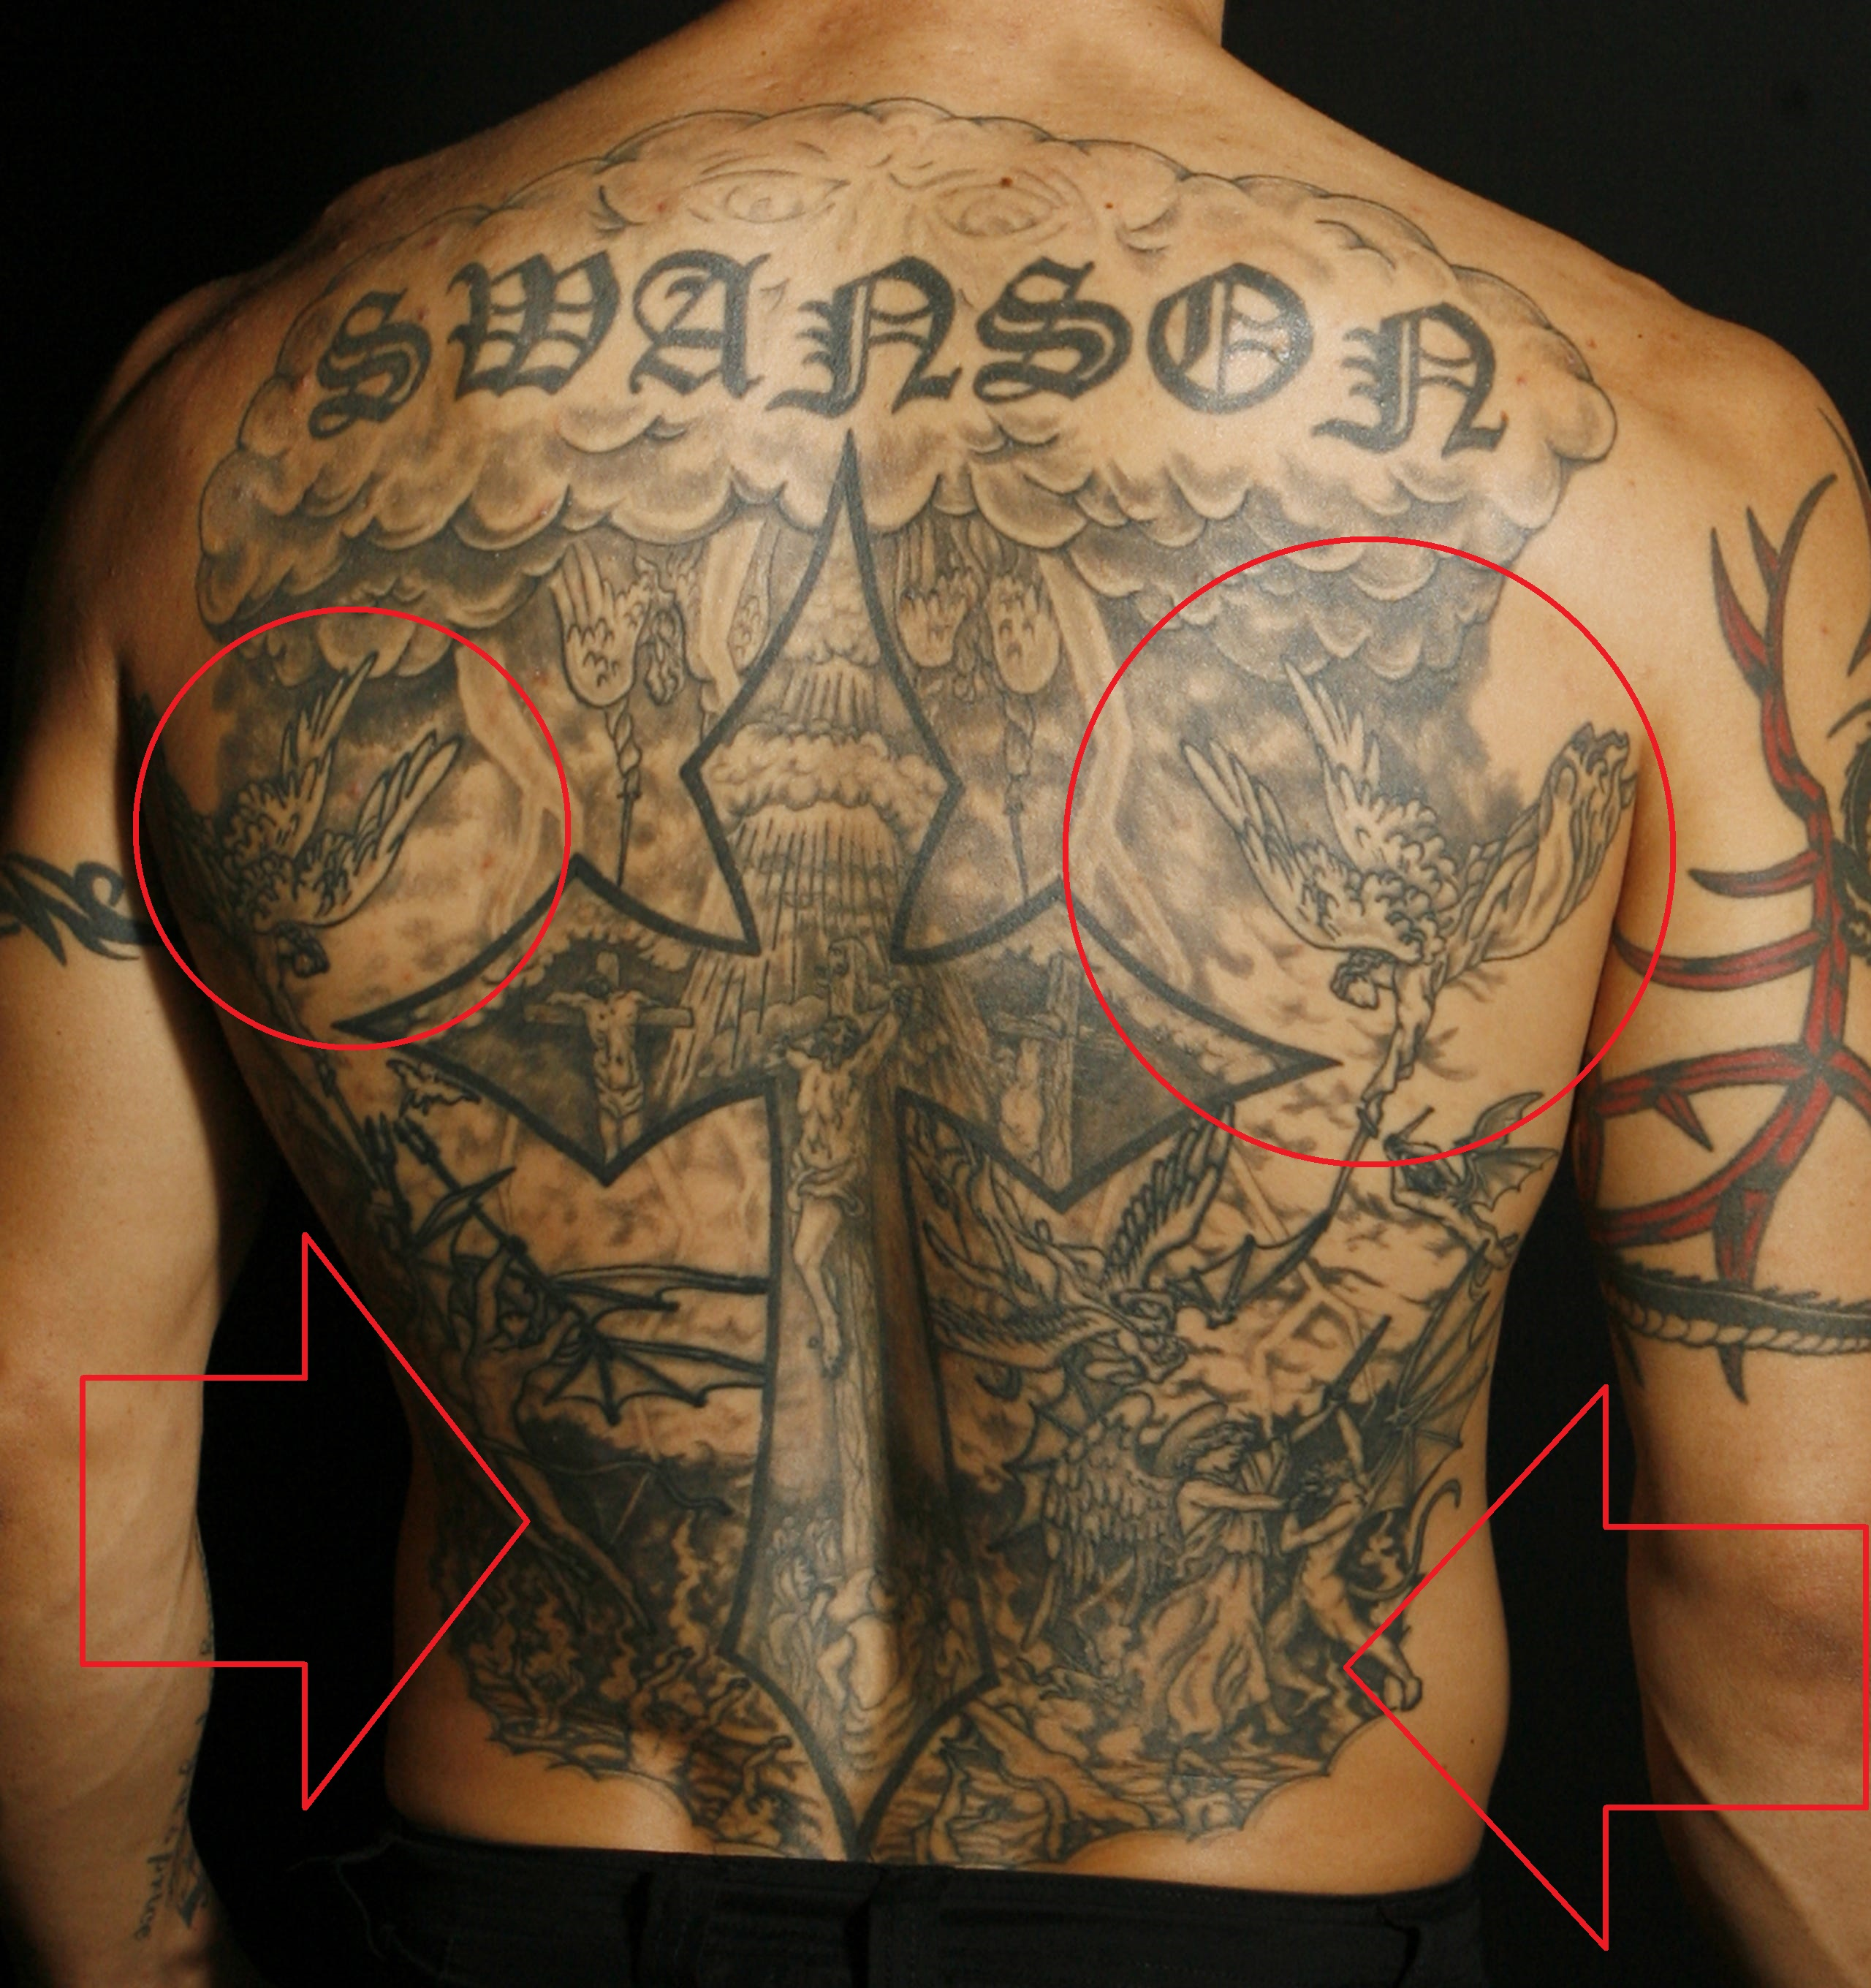 Cub Swanson Angels and Demons Tattoo